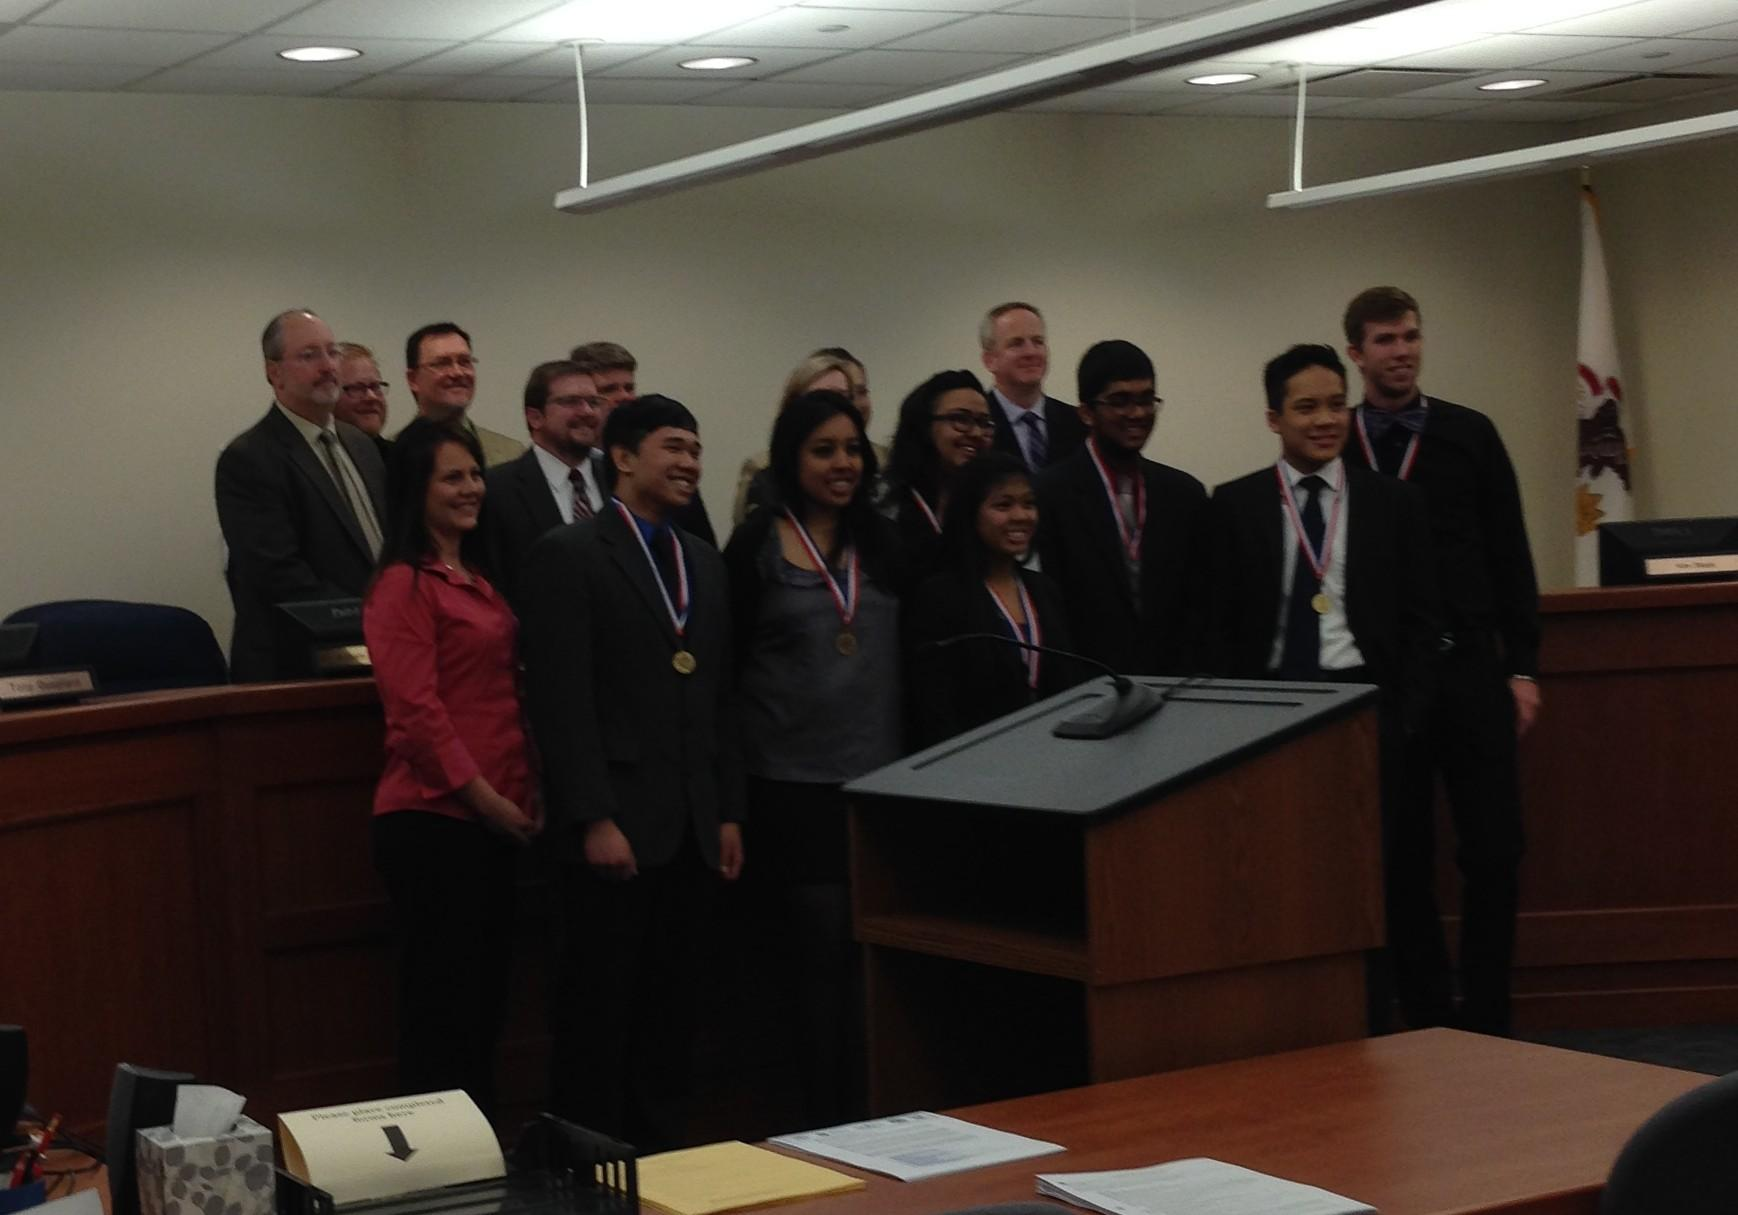 FBLA State winners are recognized by the school board (J. Polit).